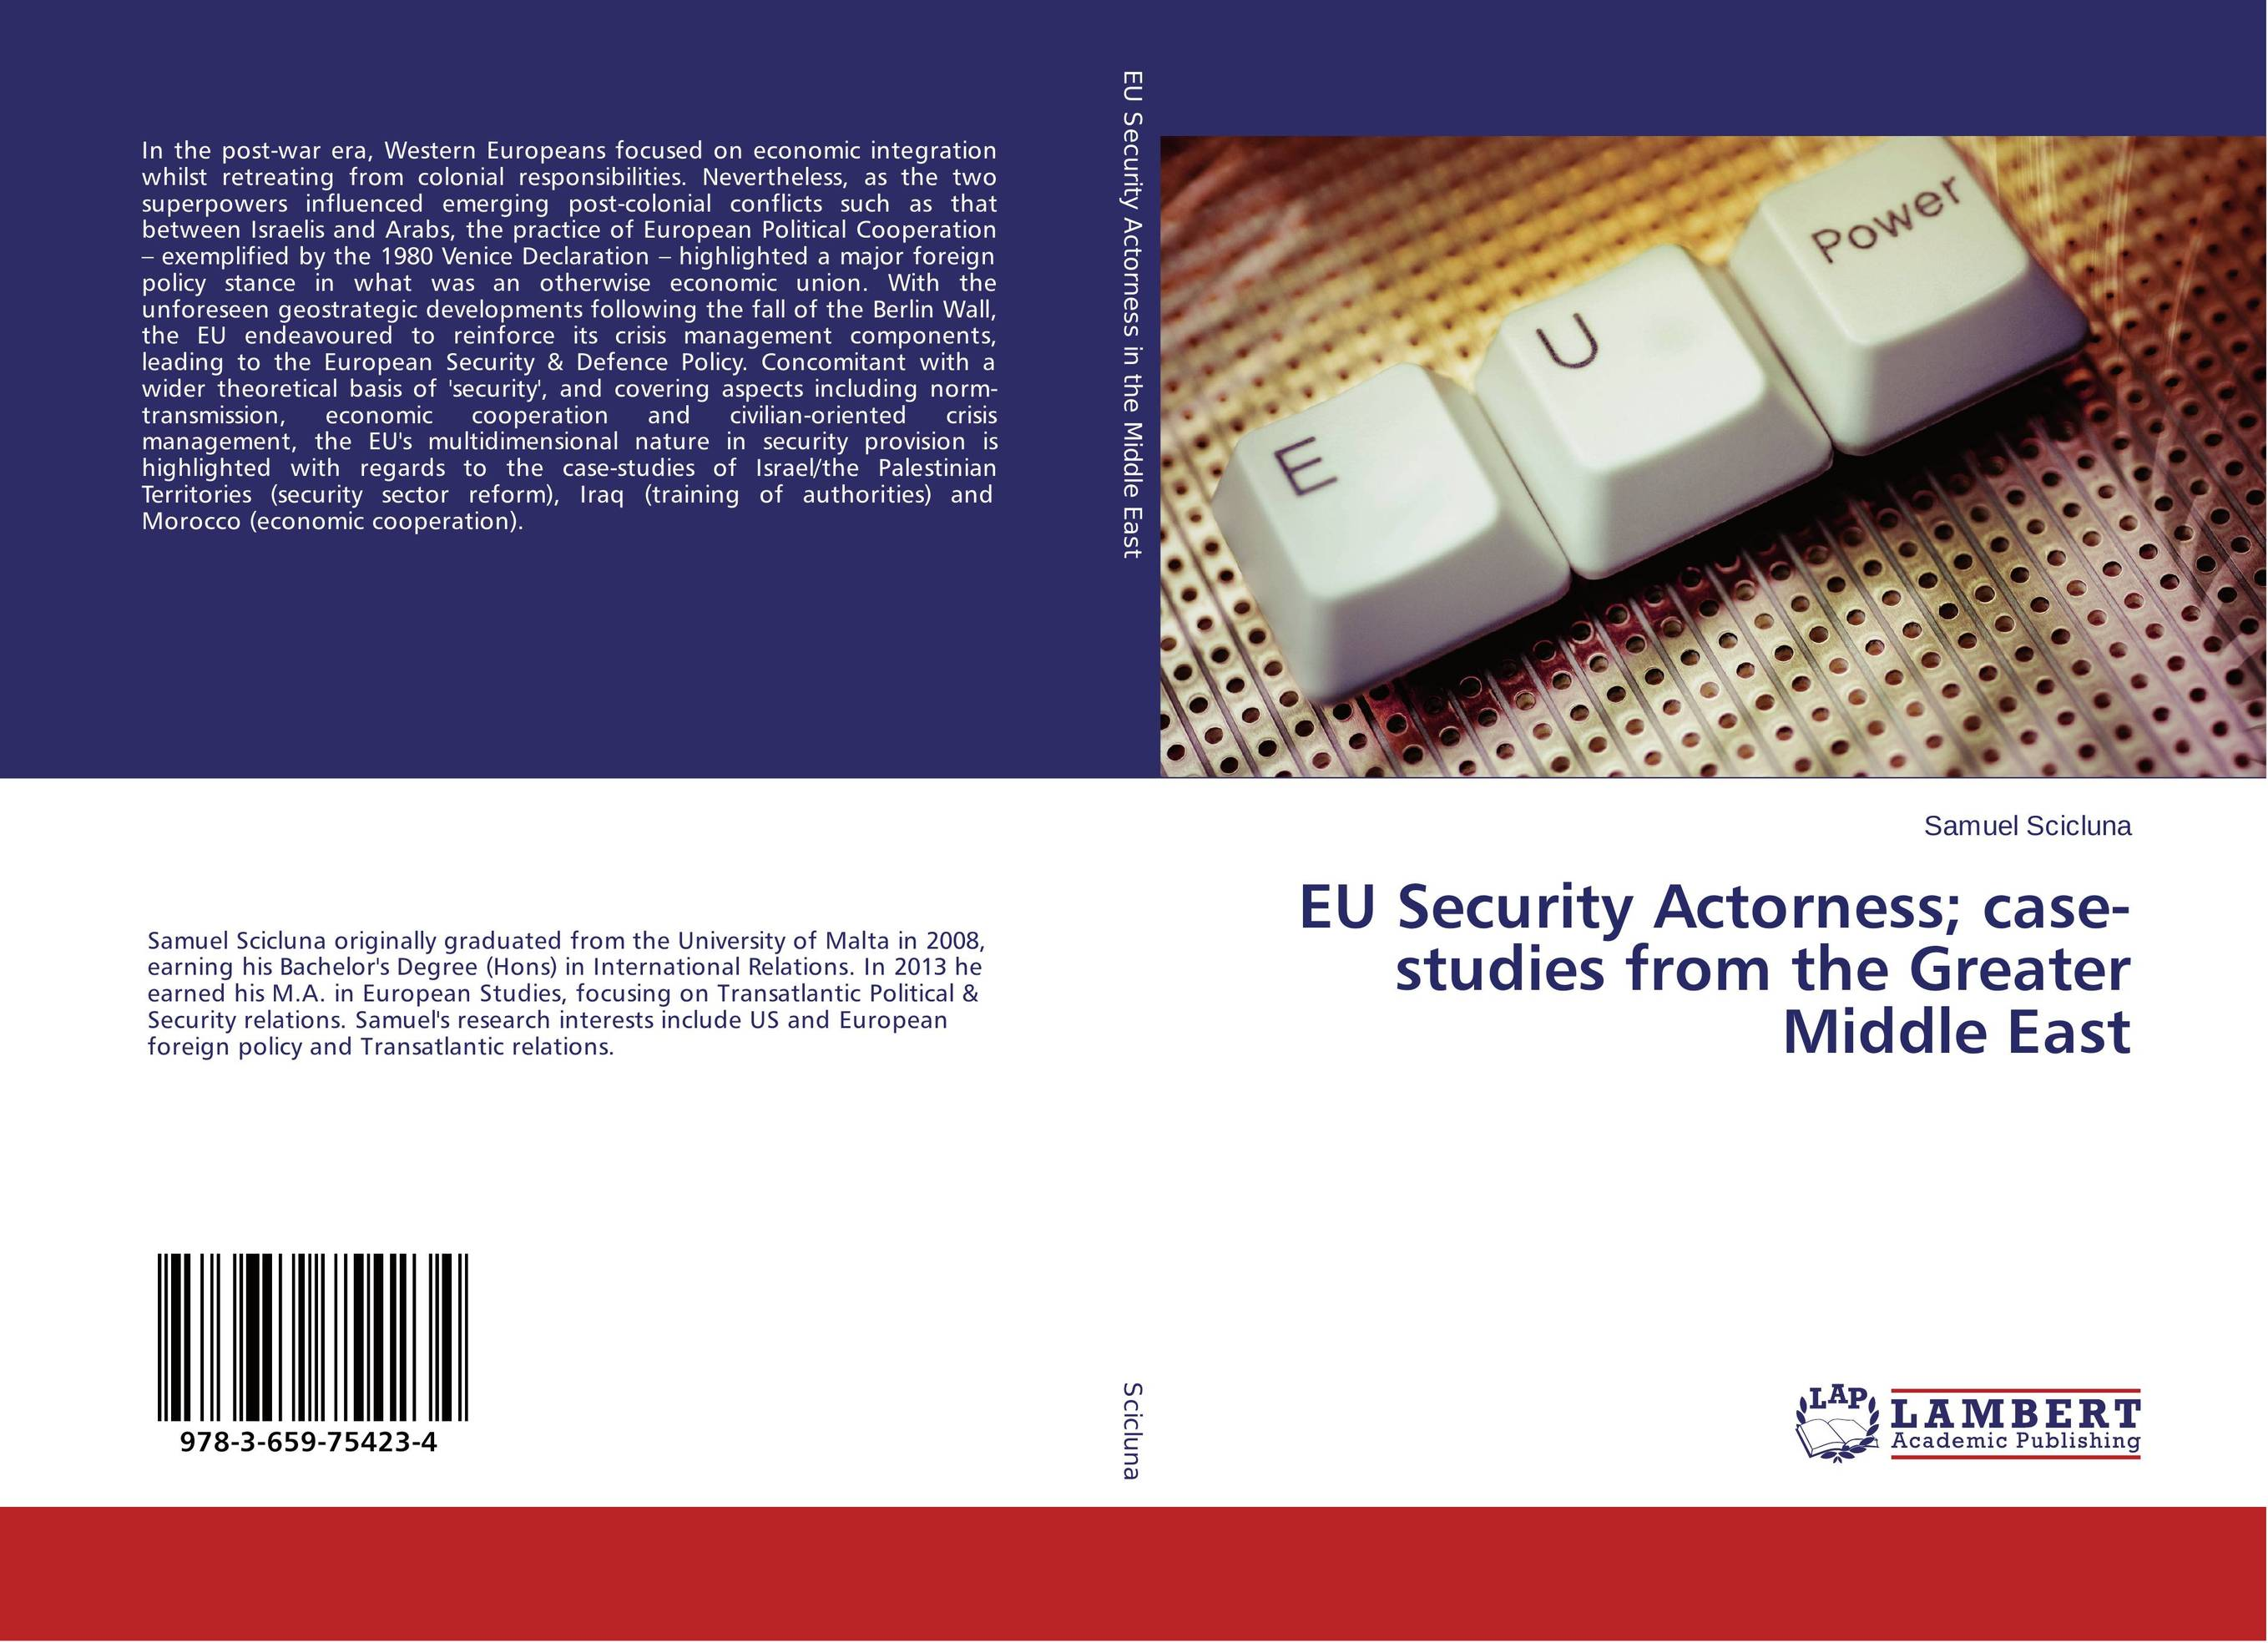 EU Security Actorness; case-studies from the Greater Middle East